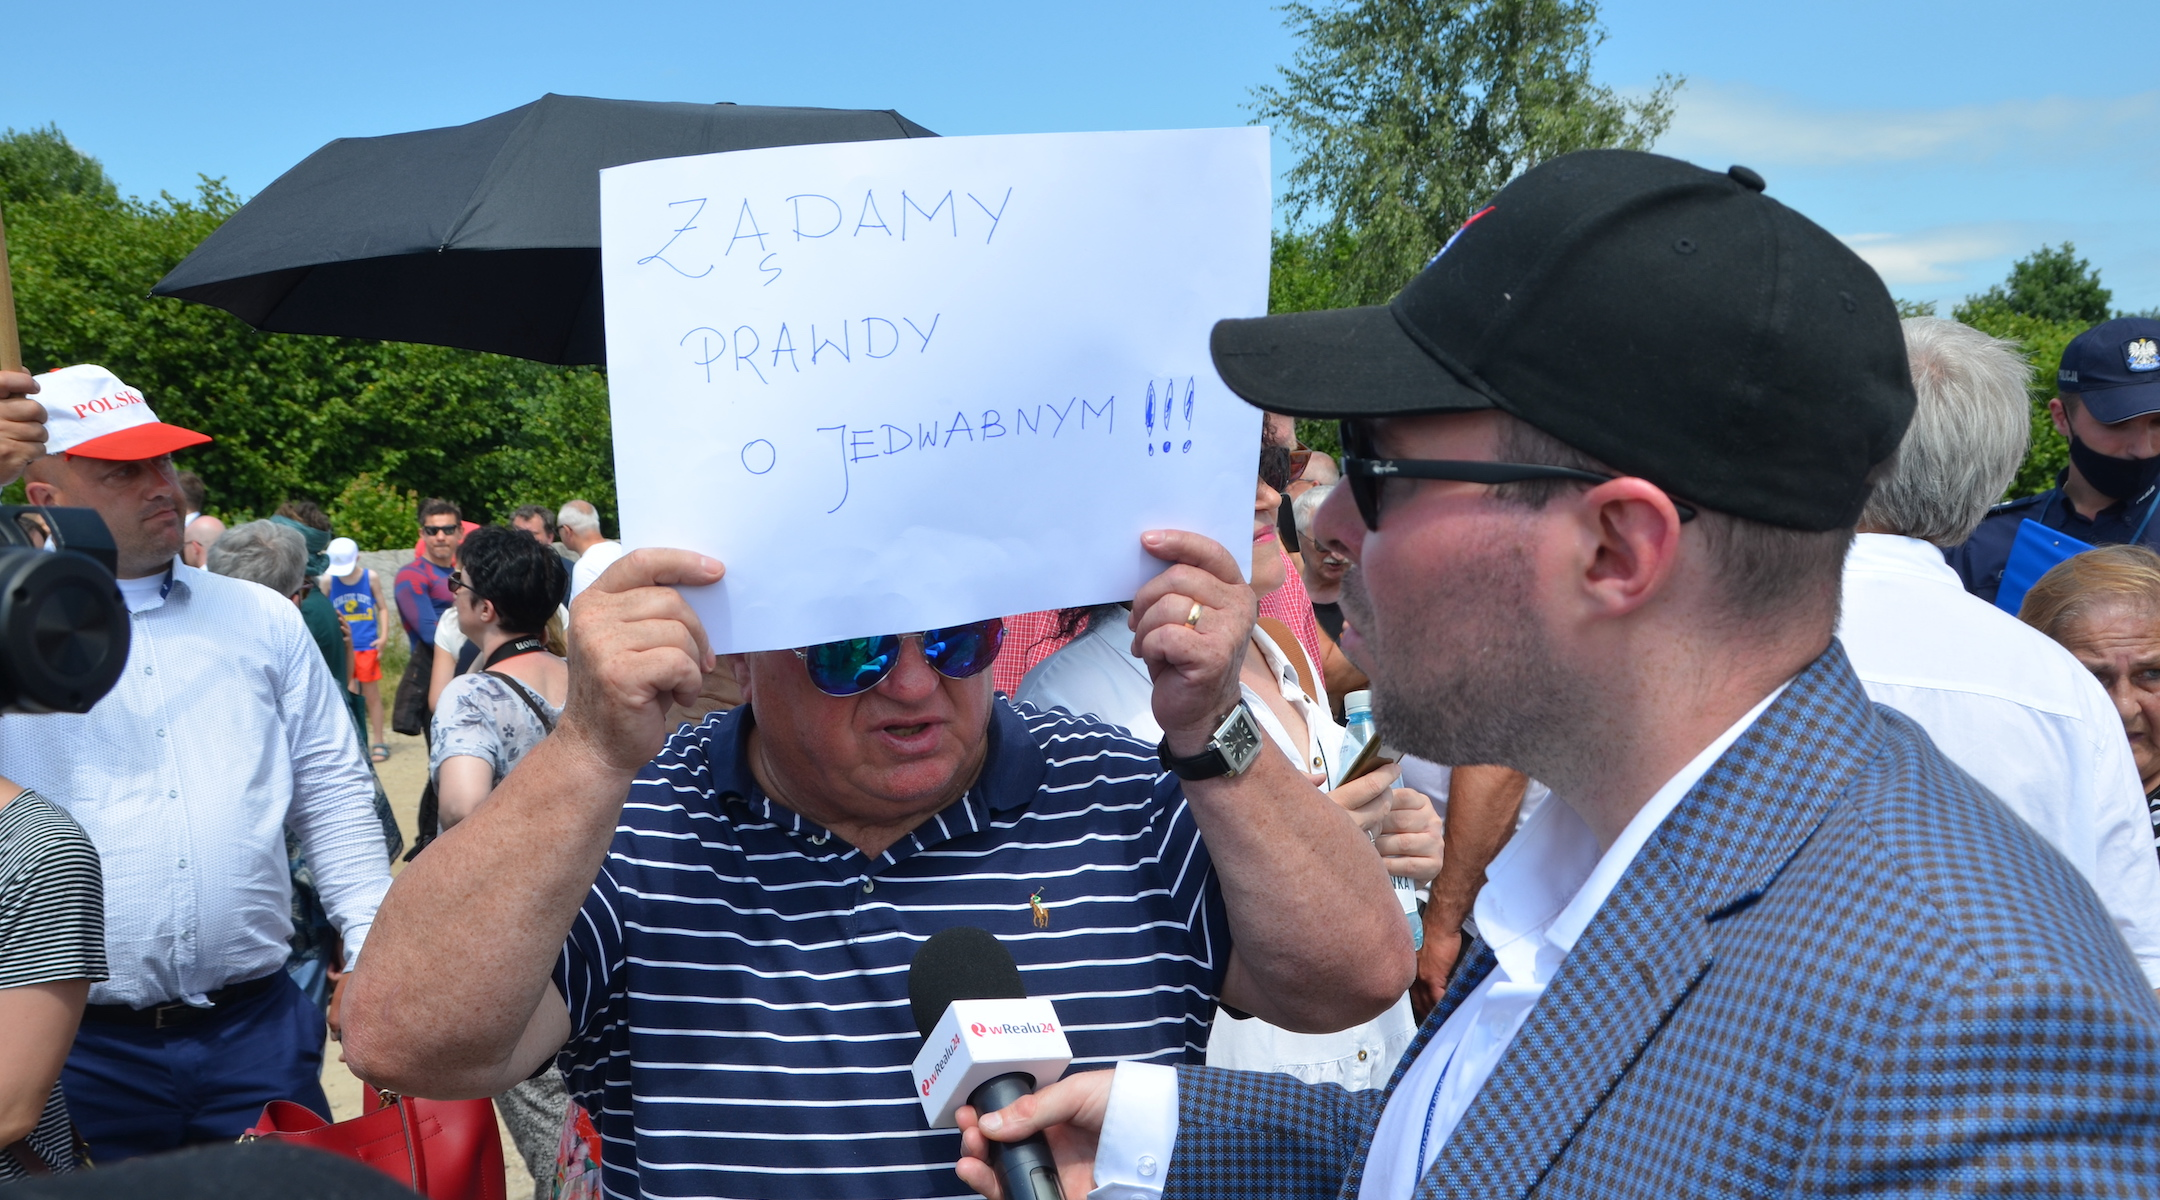 Nationalists Disrupt Commemoration of Jewish Pogrom Victims in Poland